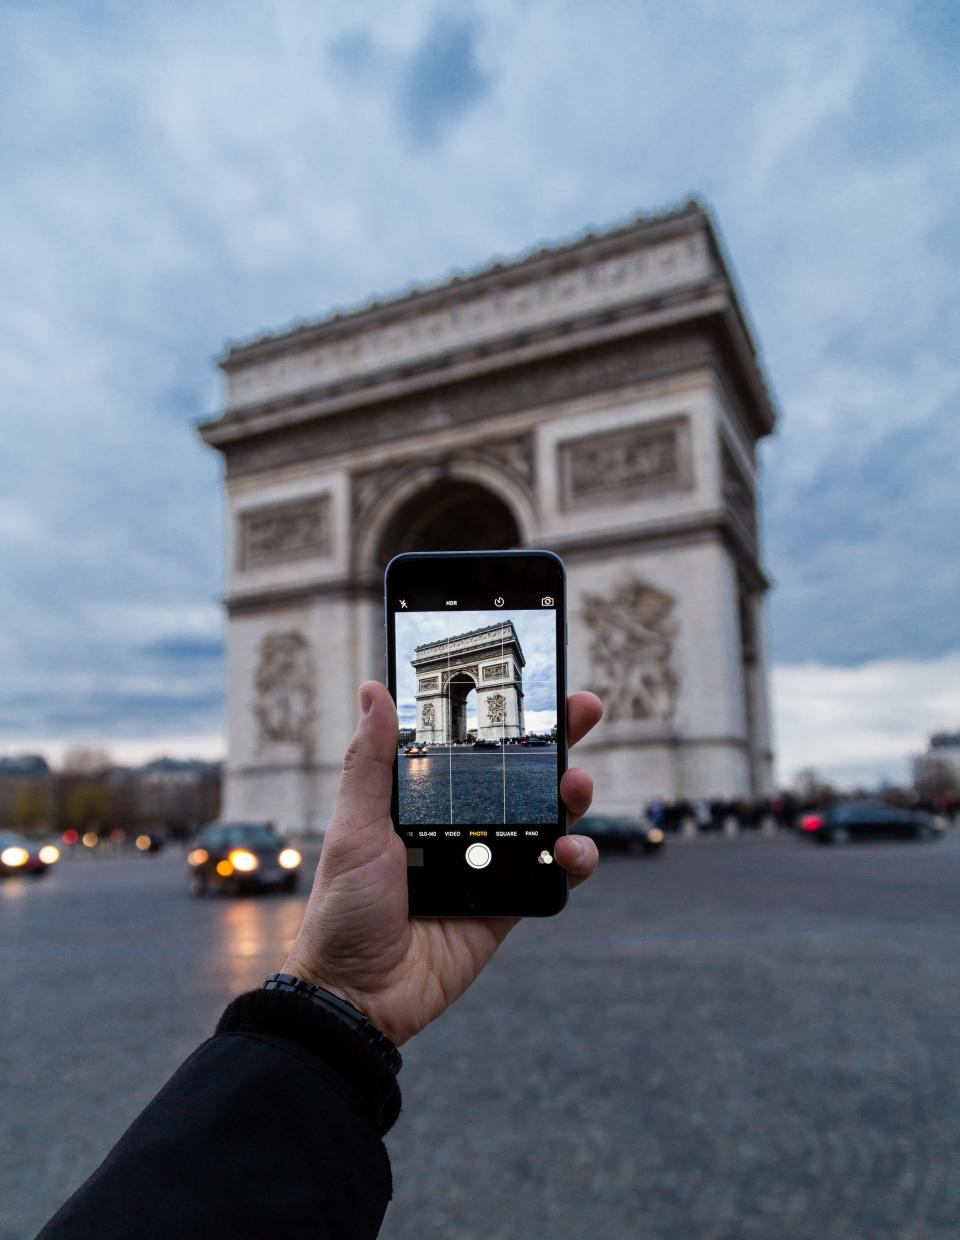 building, travel, hand, ca, vehicle, mobile, phone, camera, photography, hand, touchscreen, arch de triomphe, monument, paris